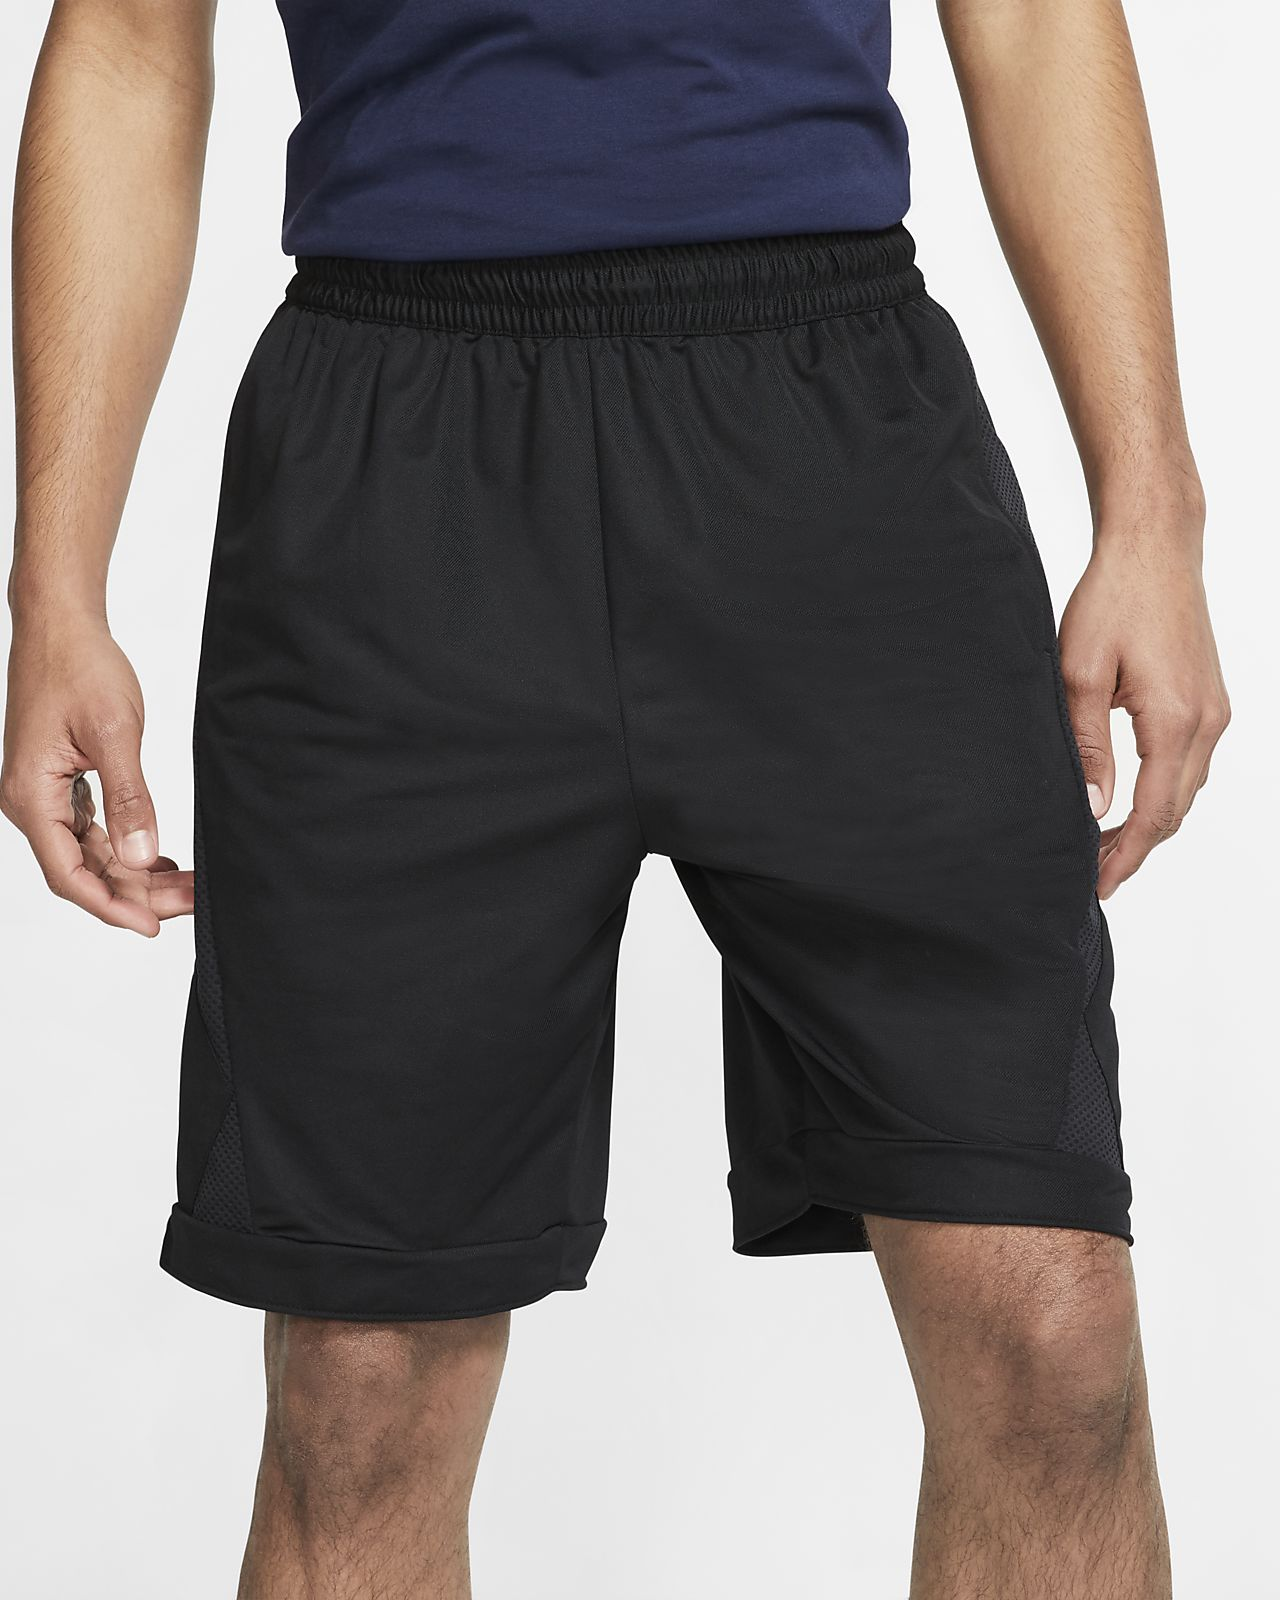 e78ce31b5cb032 Jordan Authentic Triangle Men s Basketball Shorts. Nike.com